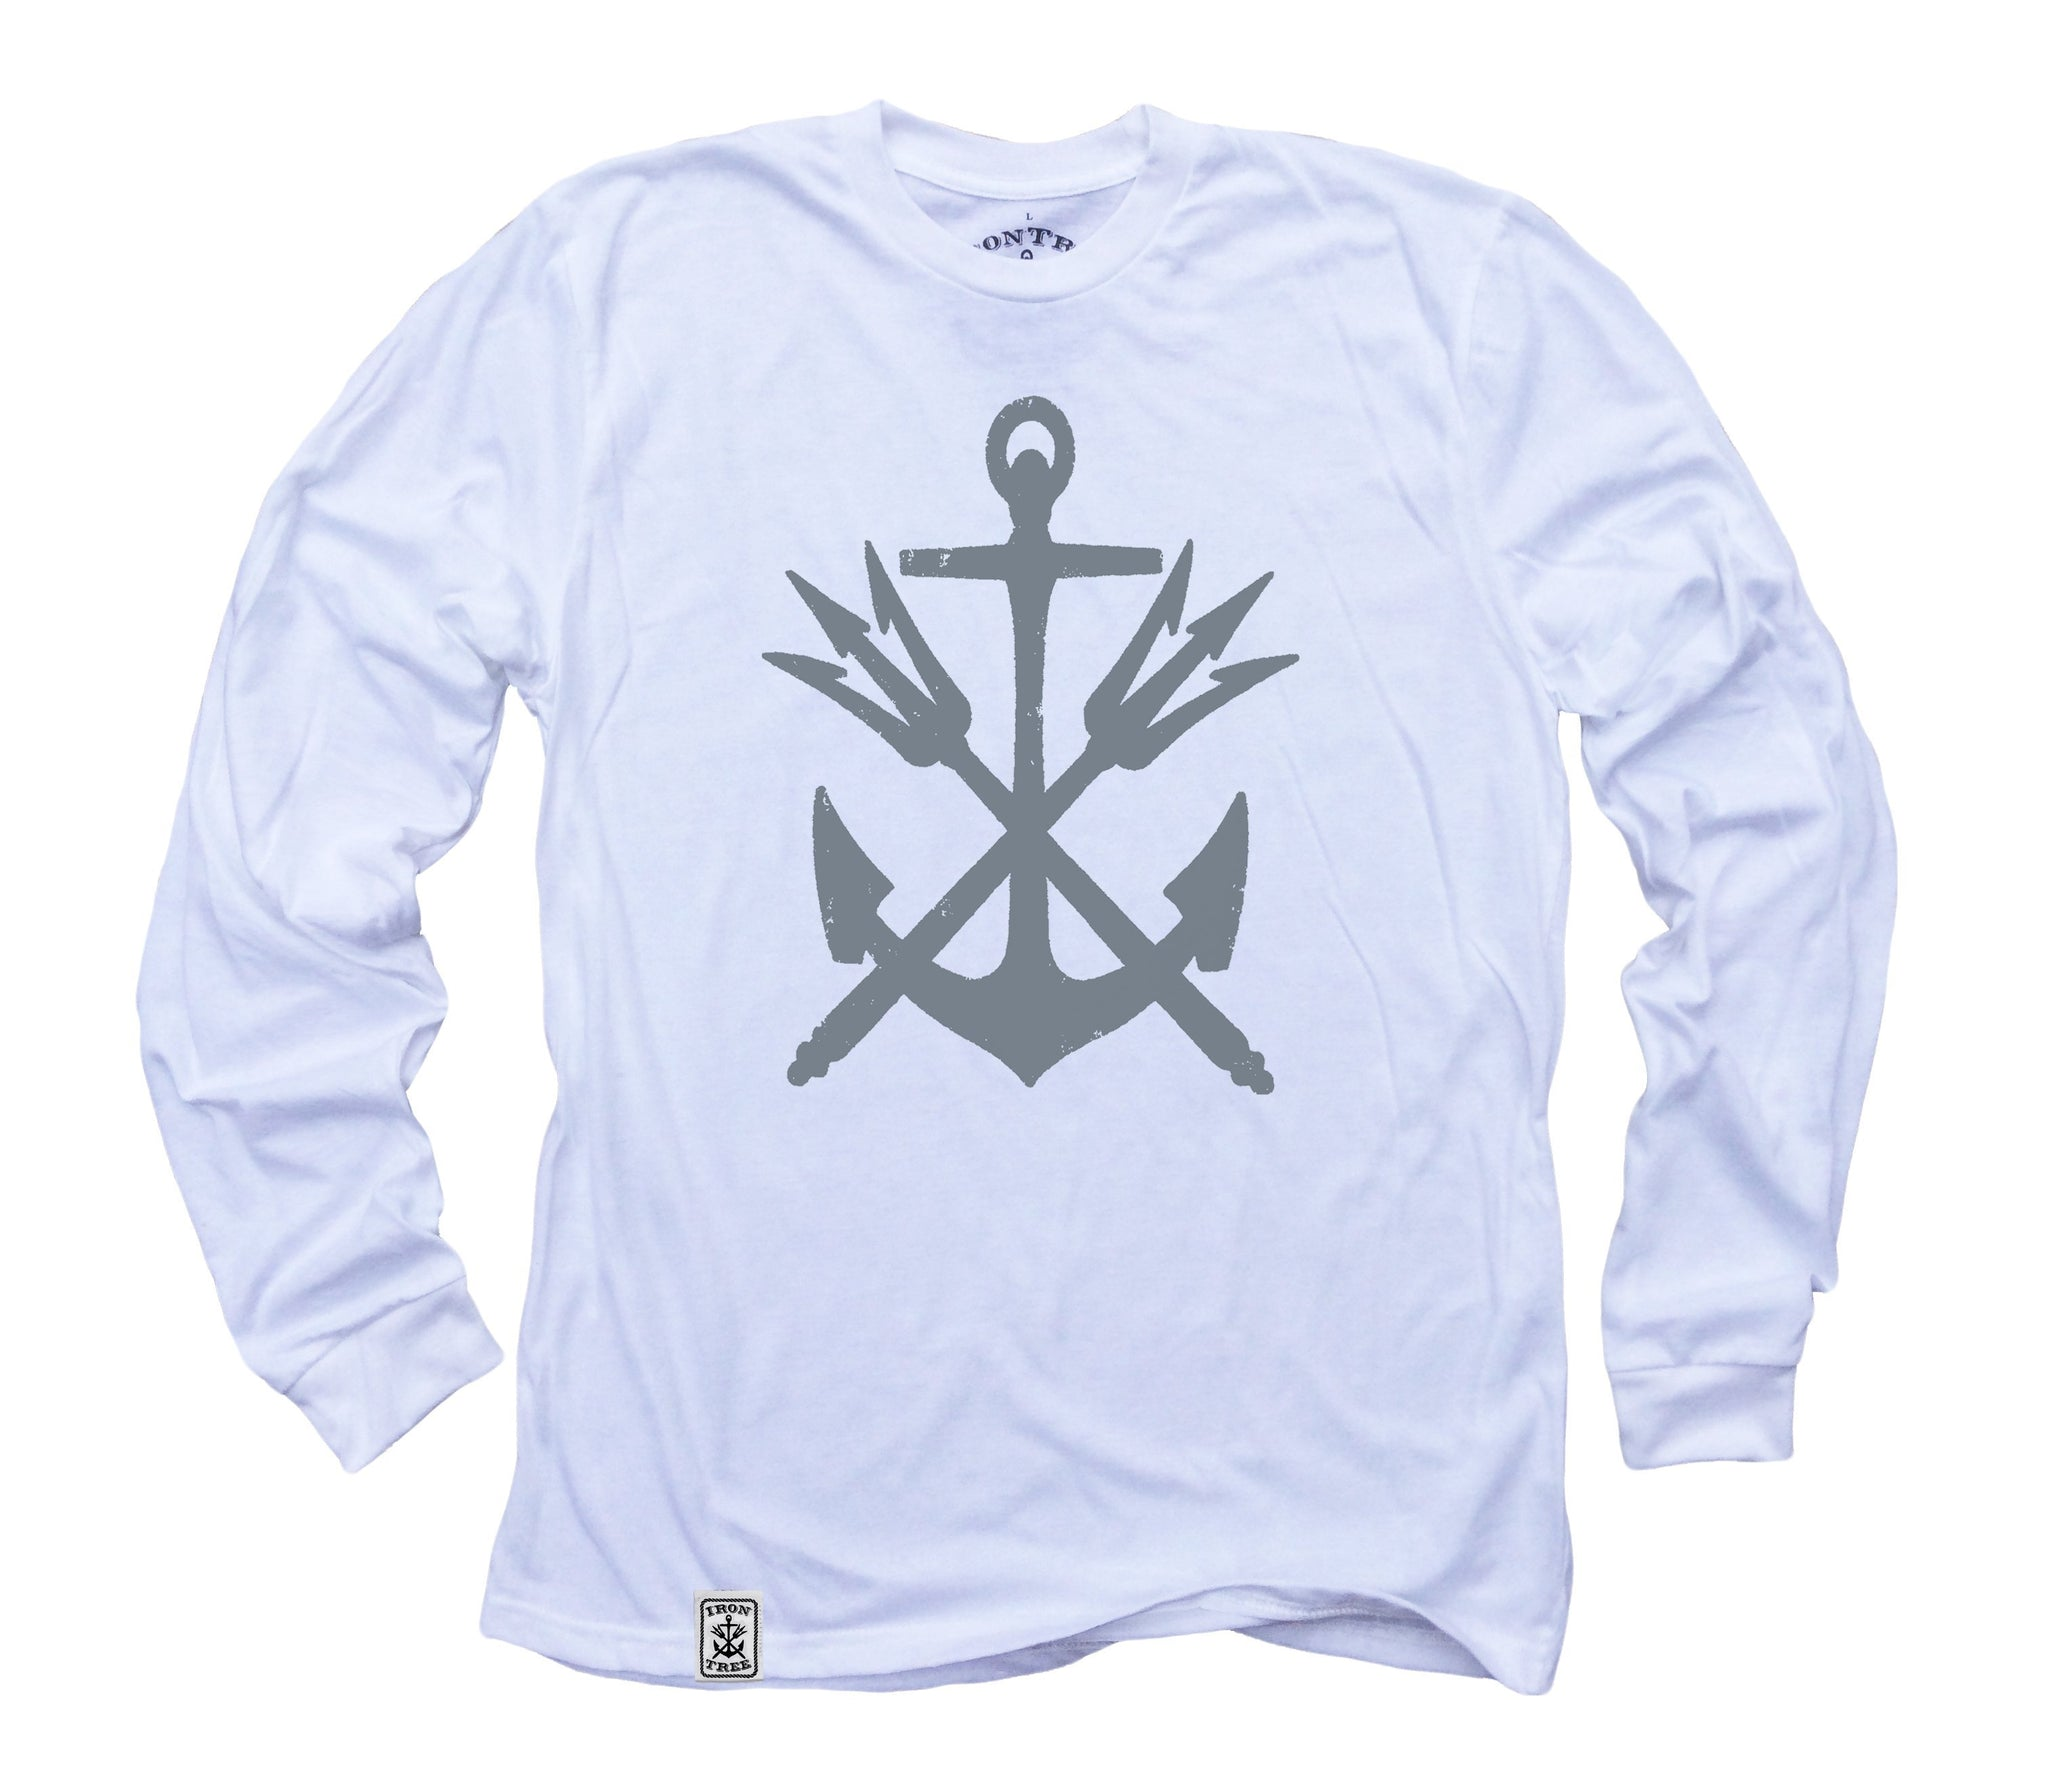 4937afd2f10b Anchor & Tridents: Organic Fine Jersey Long Sleeve T-Shirt in White